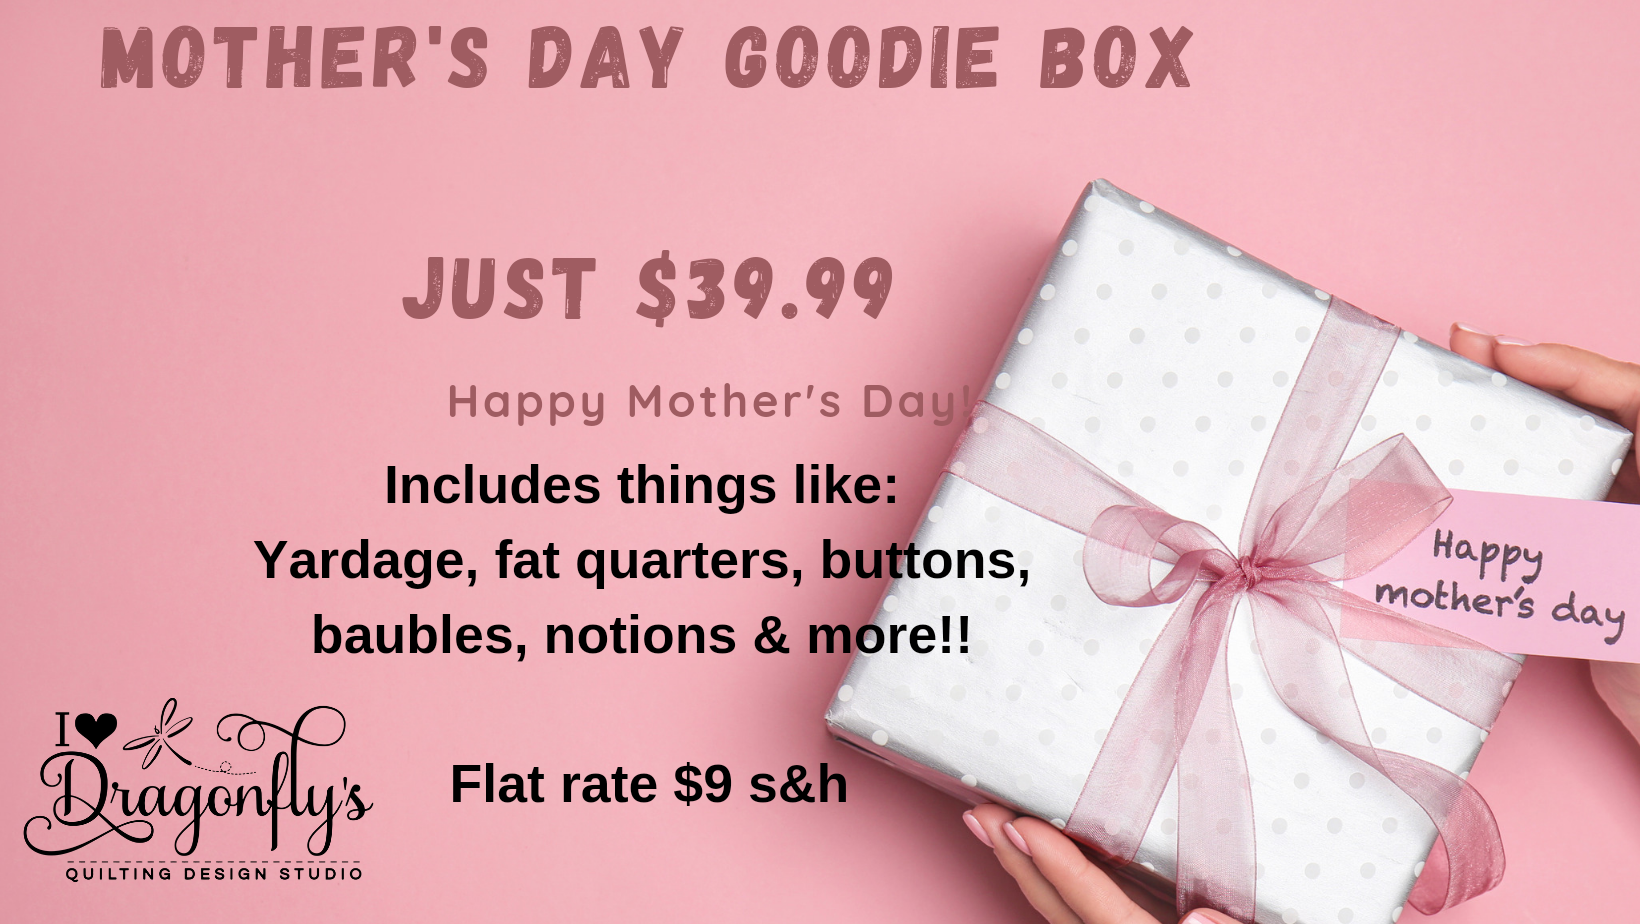 Mother's Day Good Box